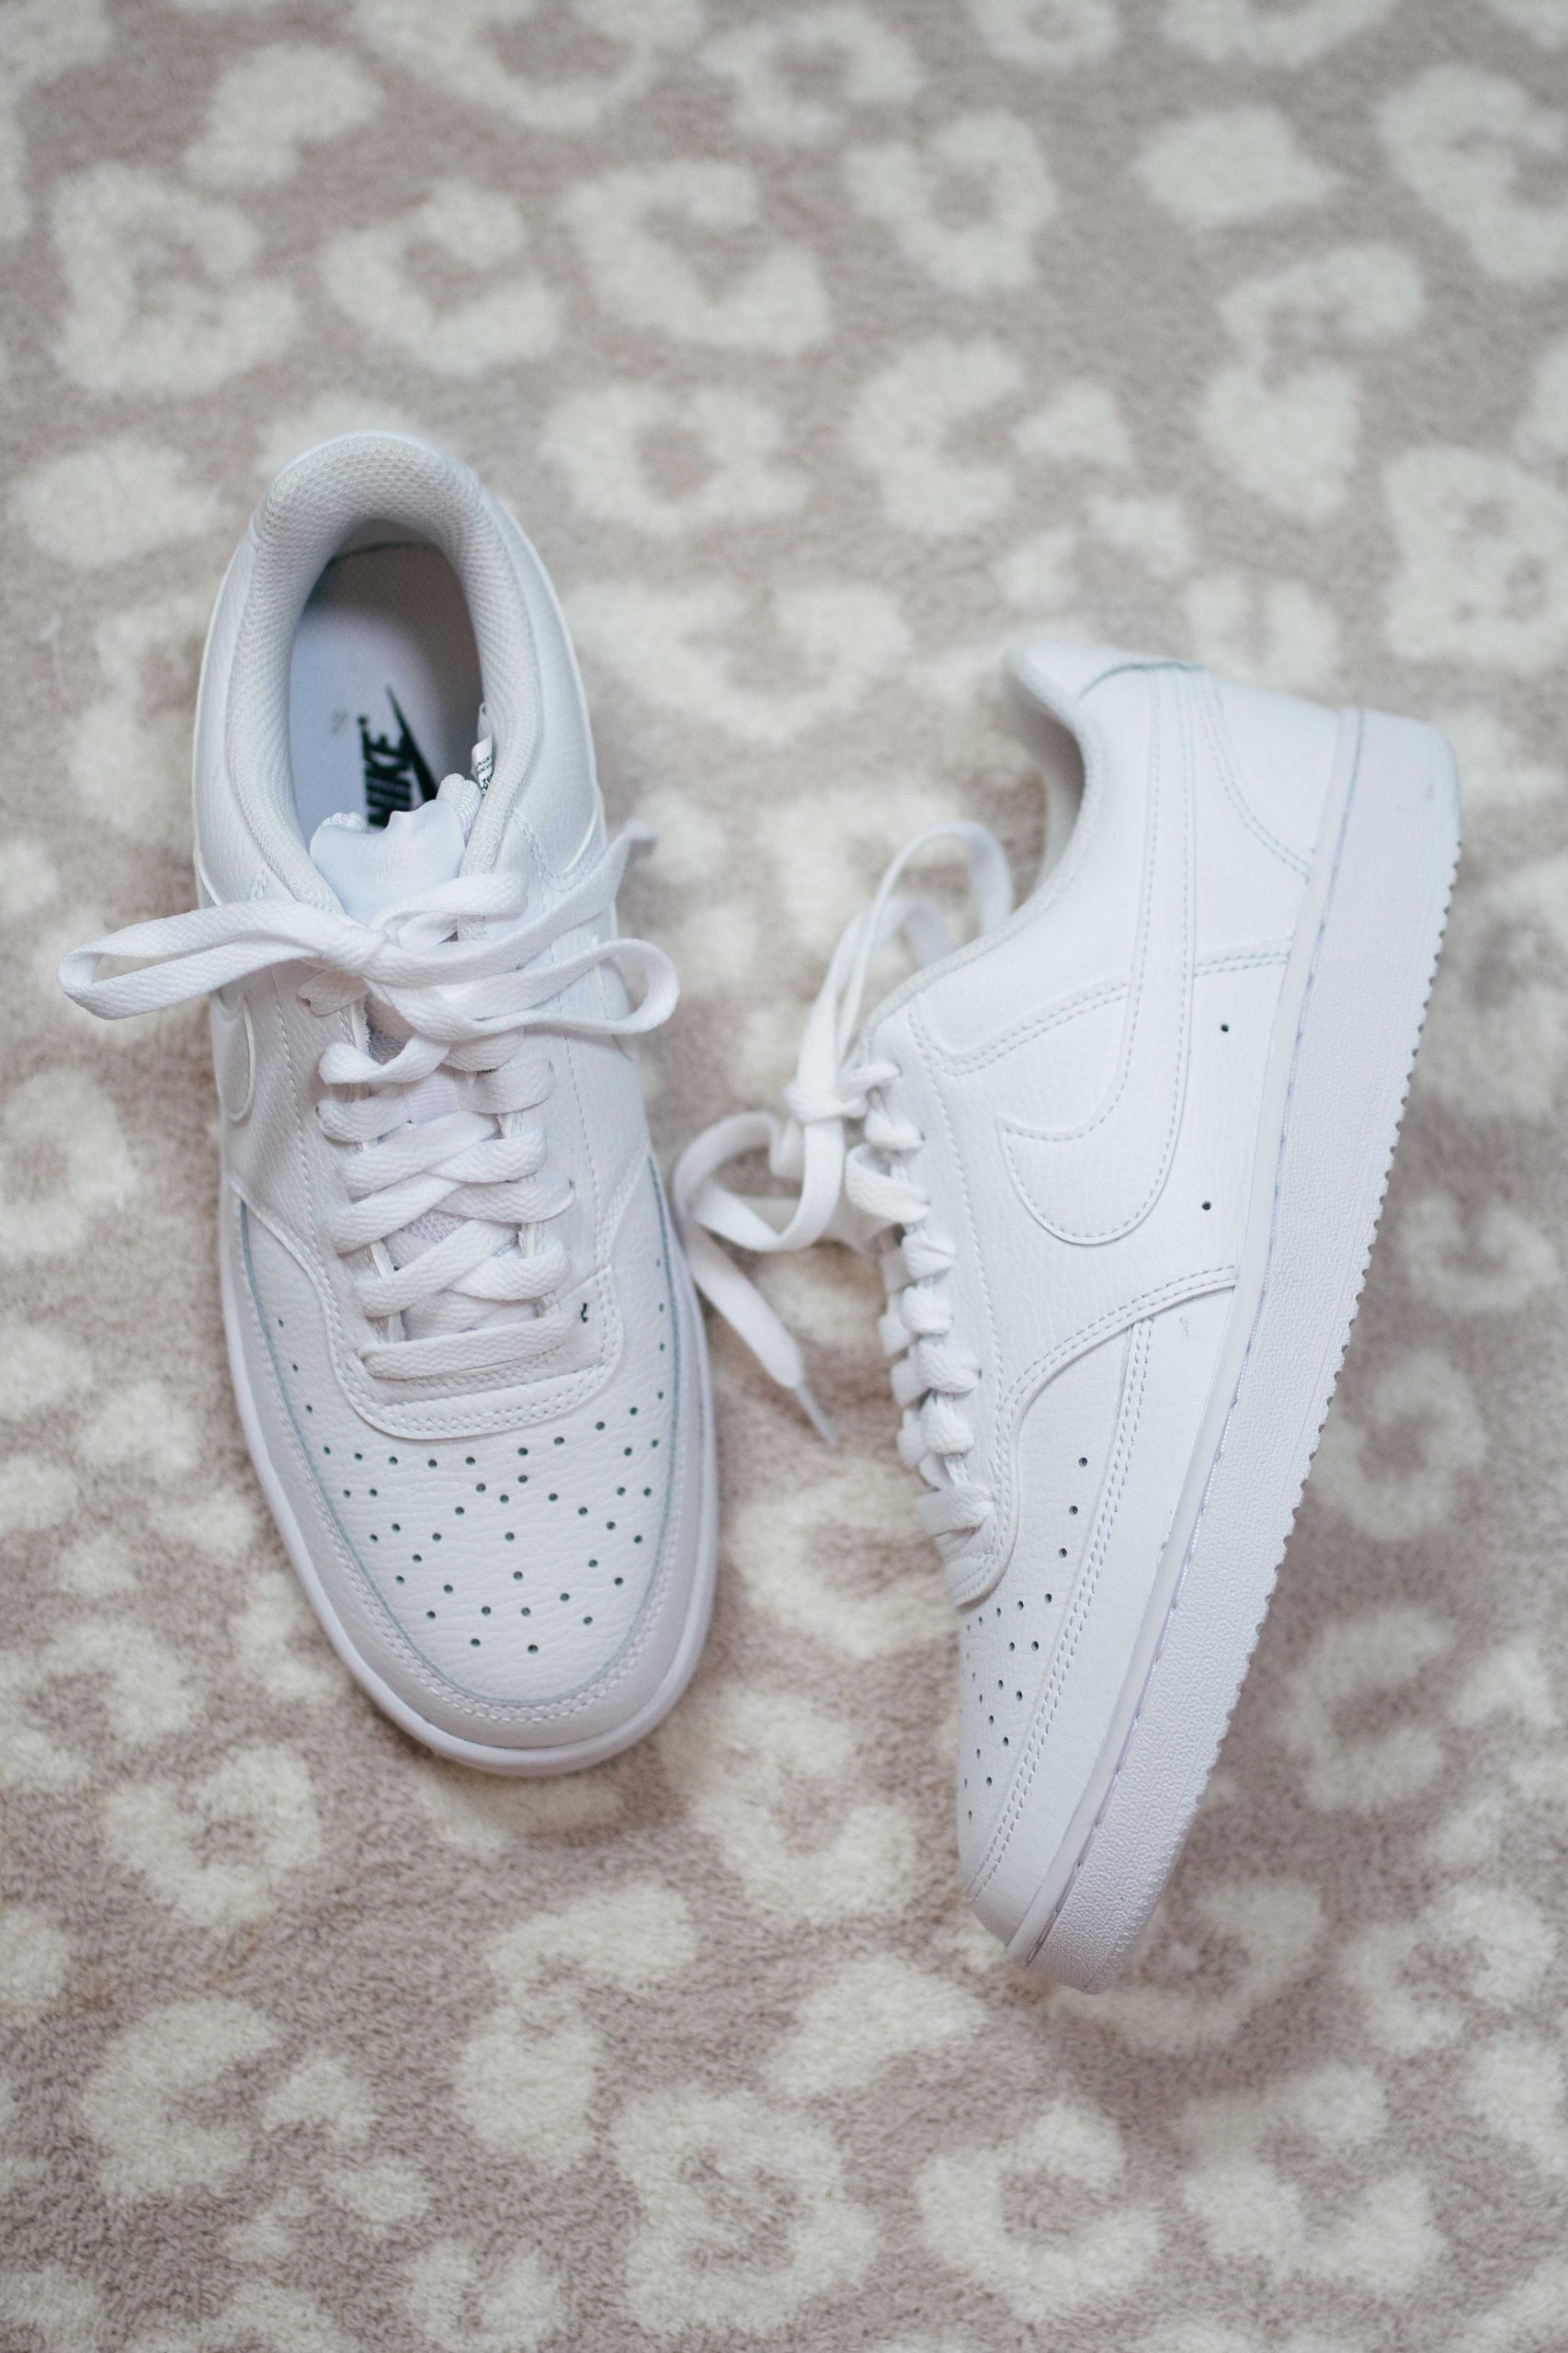 Virginia blogger, Lauren Dix, tries on 10 different pairs of white sneakers for the ultimate white sneaker review! The Nike Court Vision Sneaker pictured here are included!